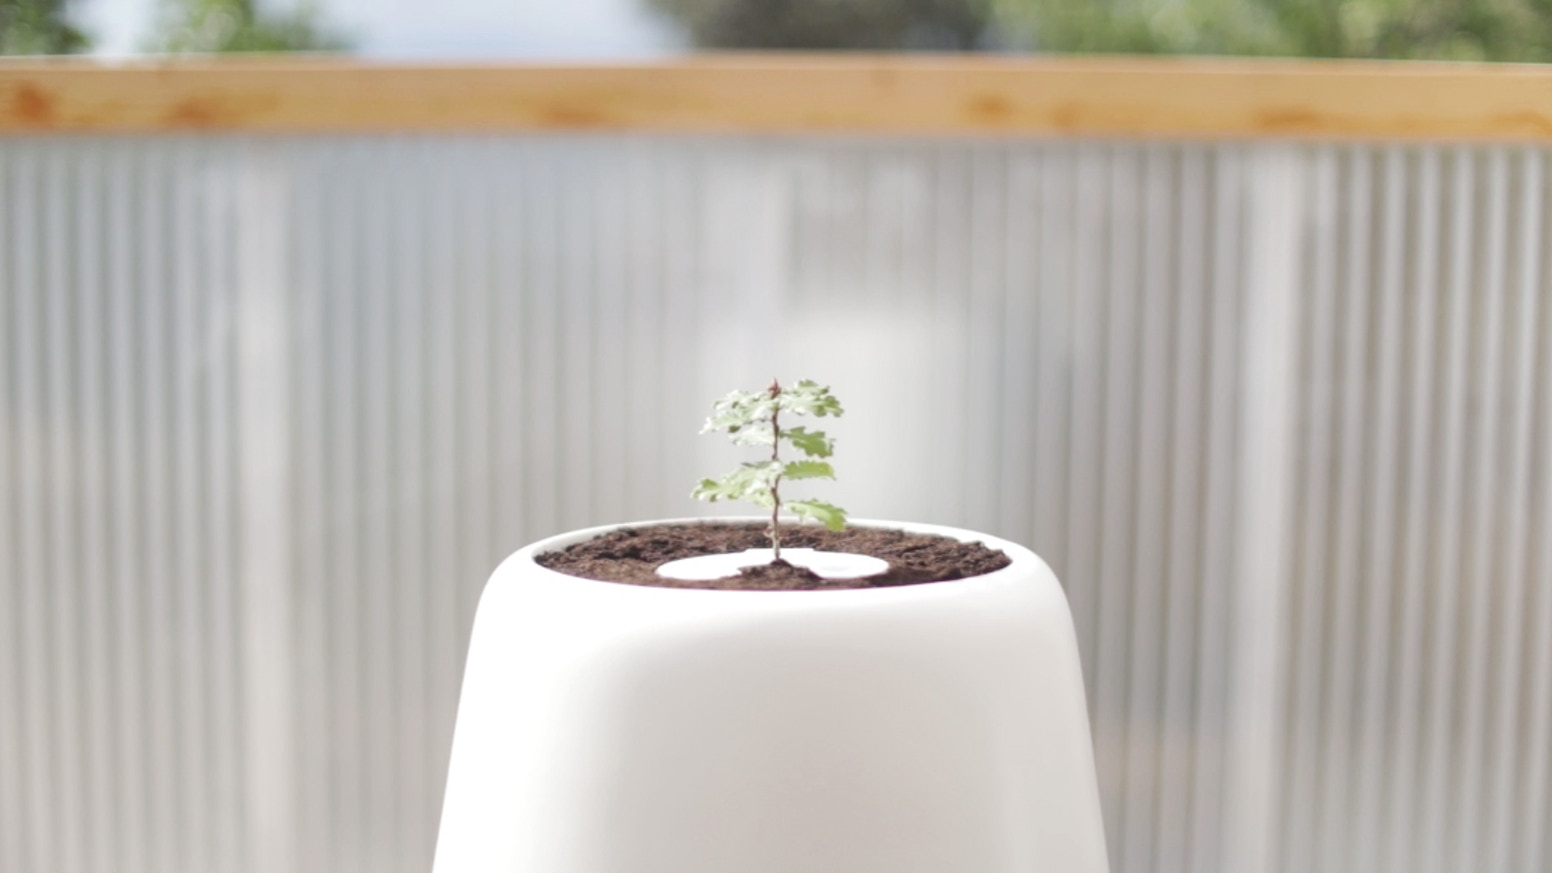 Bios Incube is the world´s first system designed to help grow the remains of your loved ones into trees.